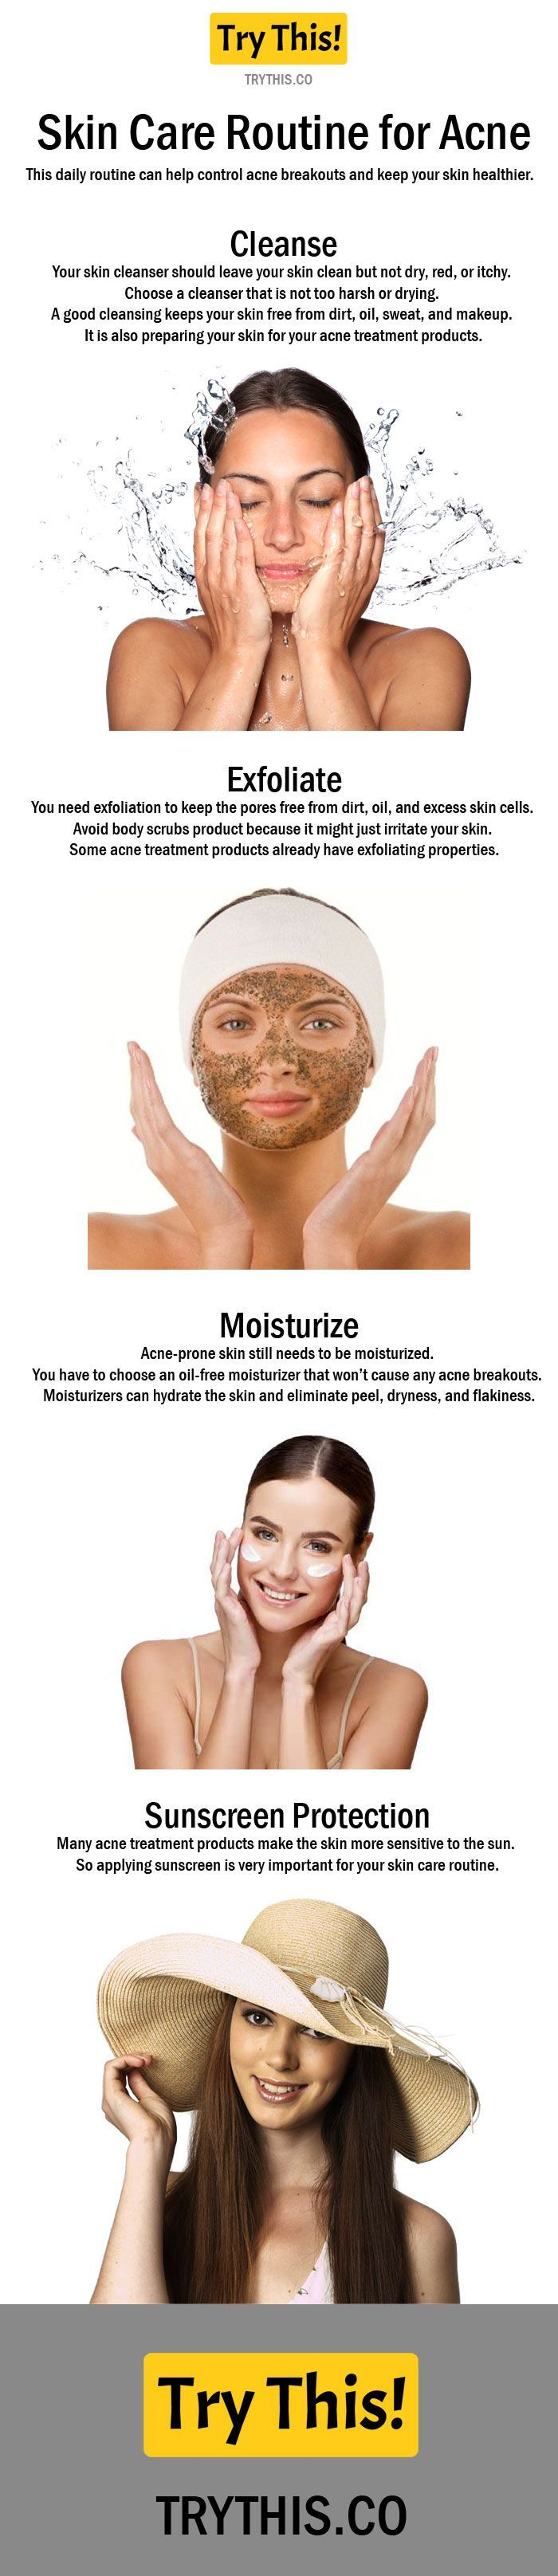 Skin Care Routine for Acne Step by Step Skin care